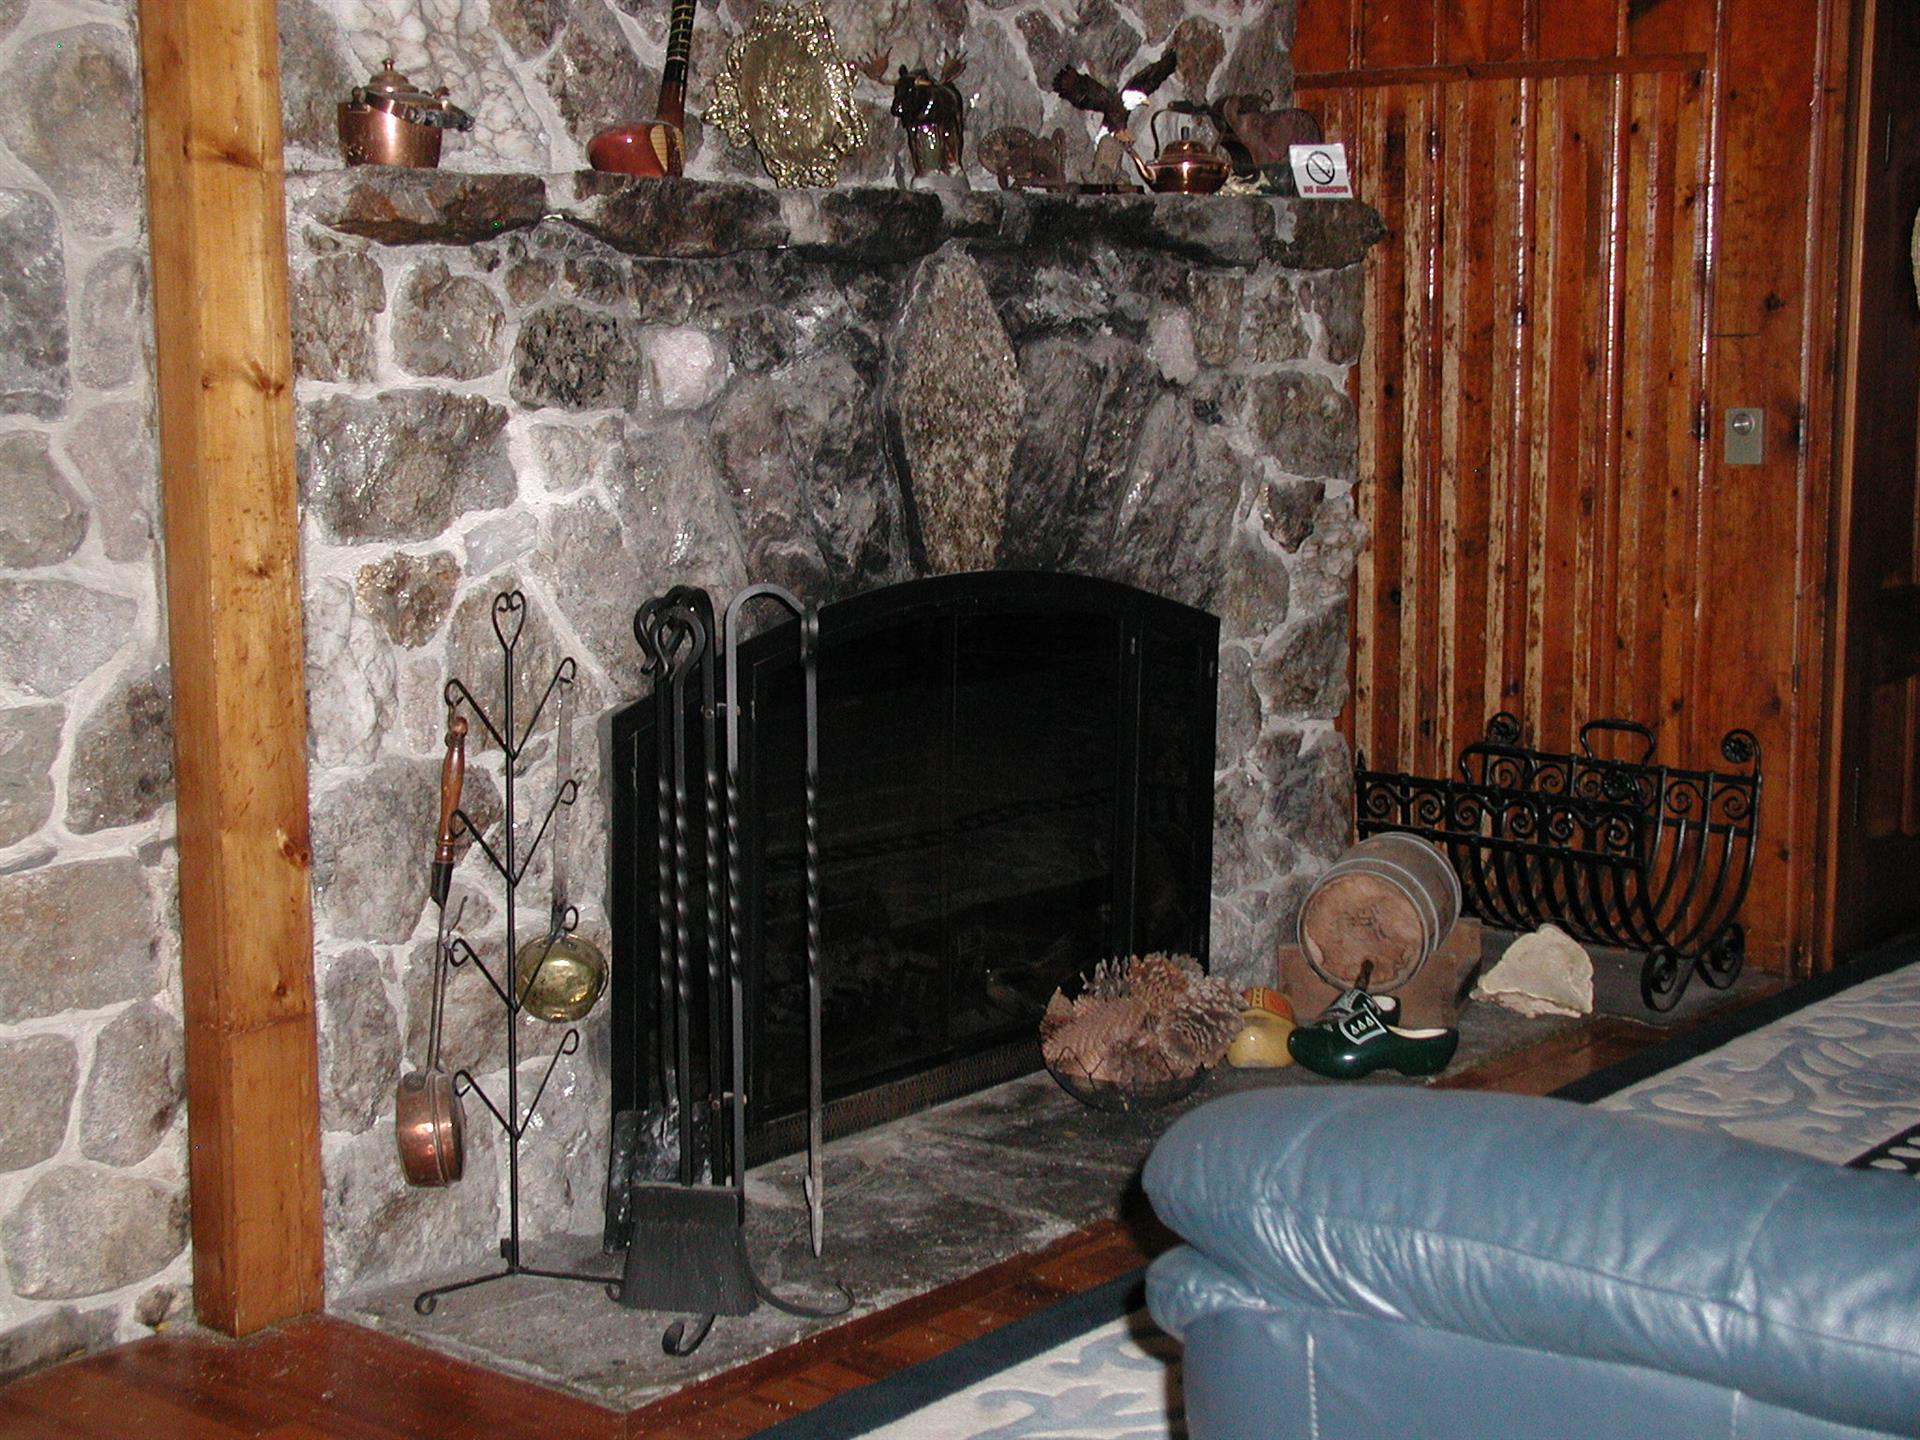 interior of moose lodge with a fireplace